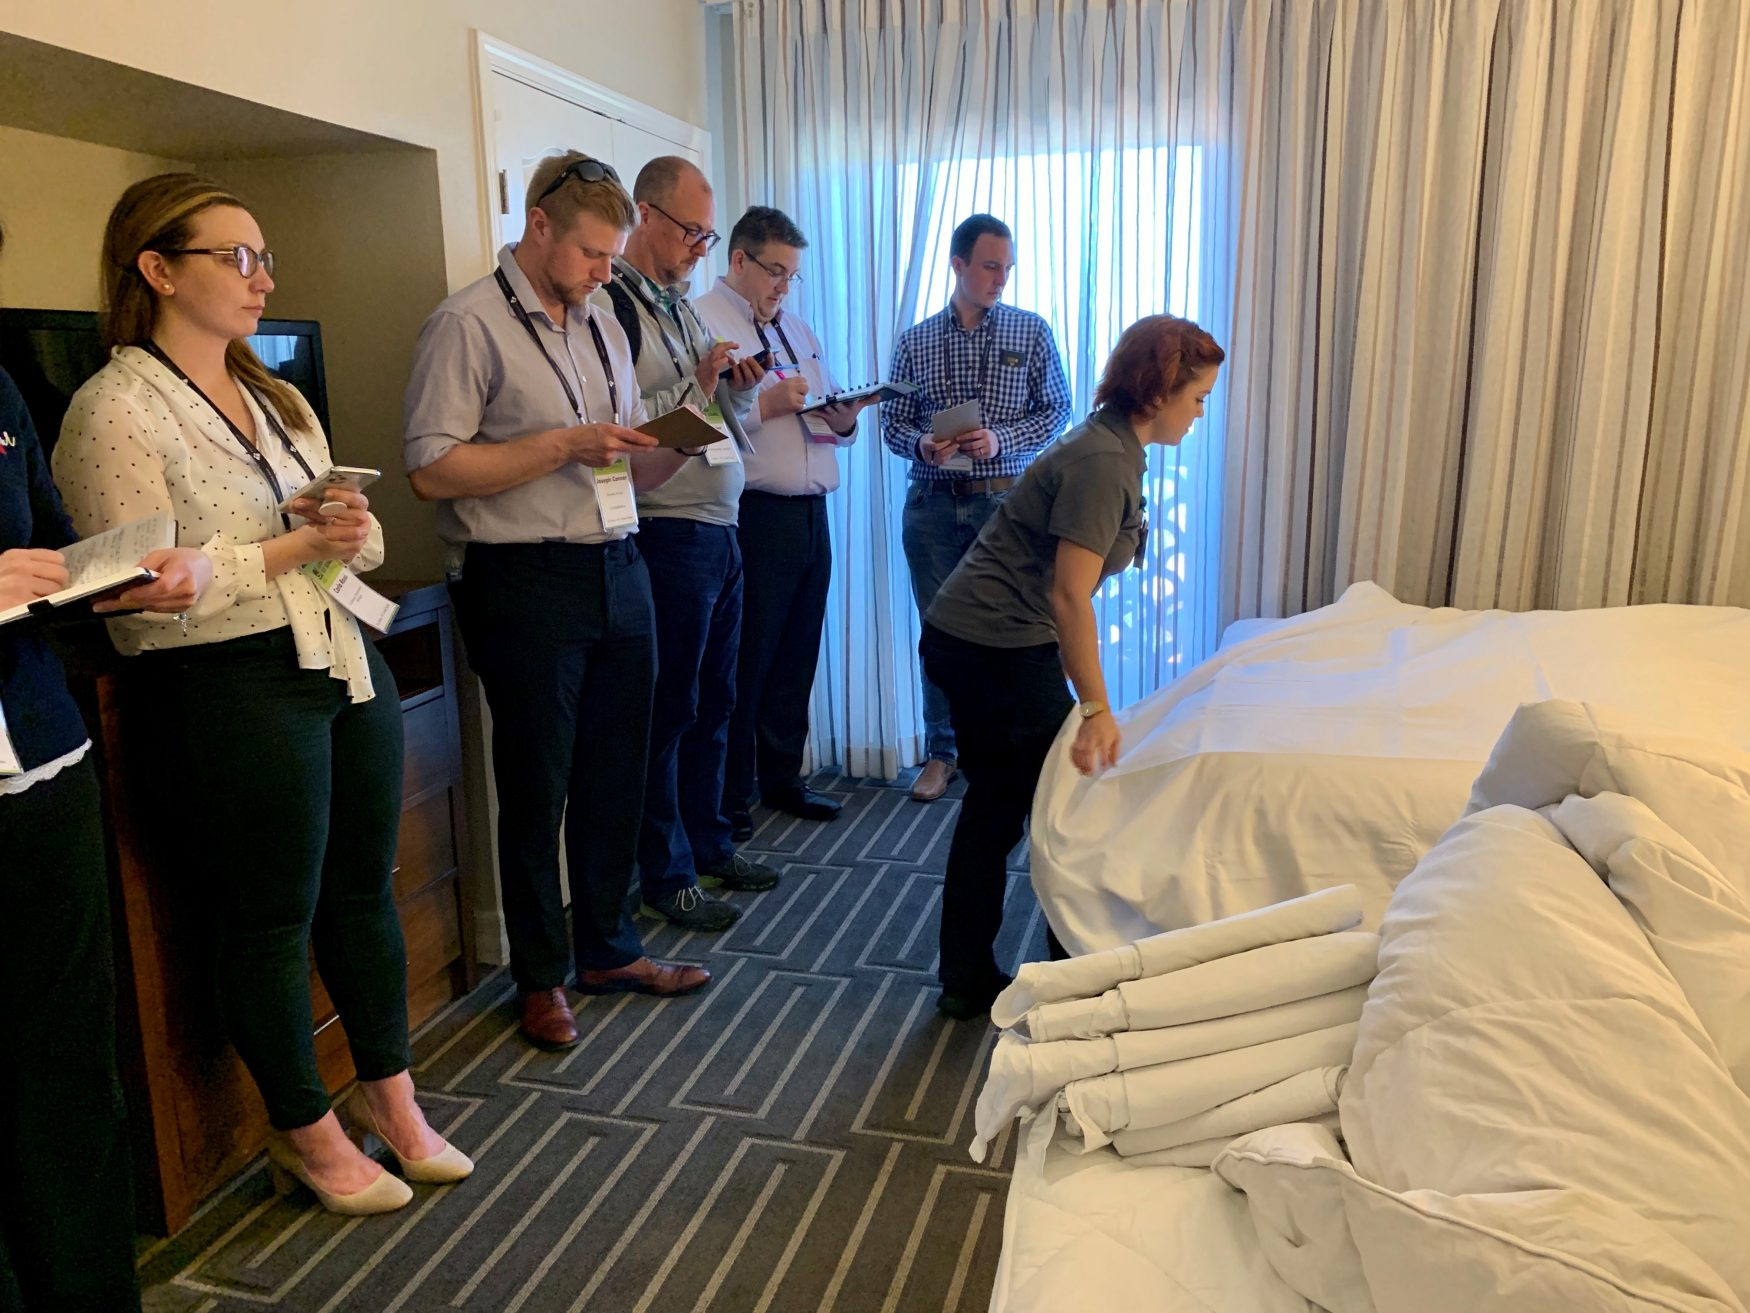 Attendees in hotel room